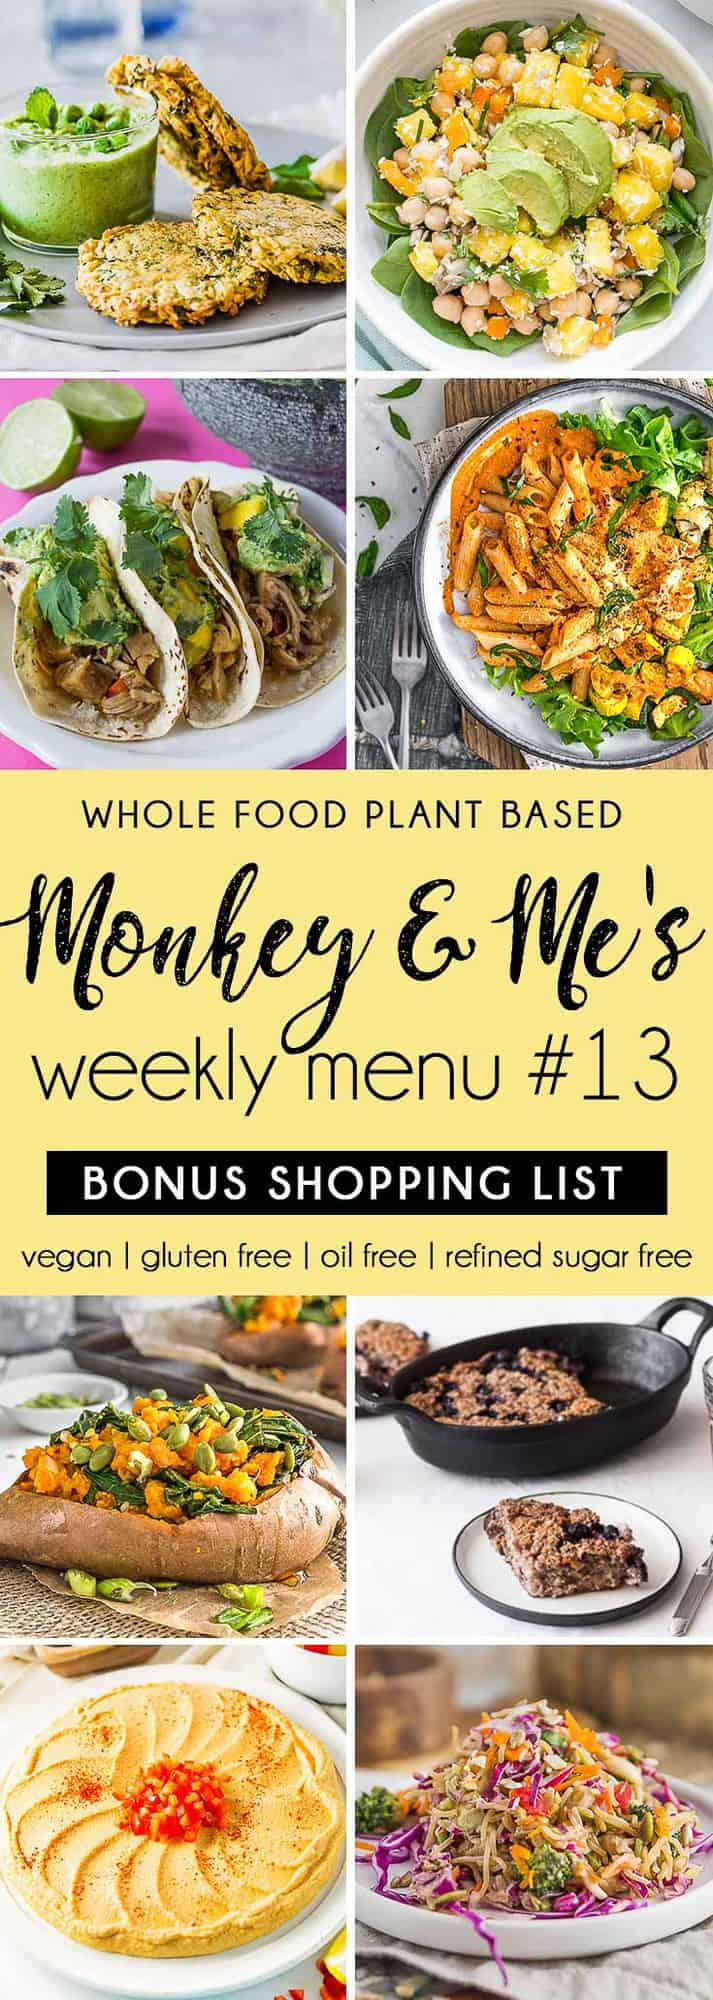 Monkey and Me's Menu, Menu 13, weekly recipe plan, menu, planner, plant based, vegan, vegetarian, whole food plant based, gluten free, recipe, wfpb, healthy, healthy vegan, oil free, no refined sugar, no oil, refined sugar free, dairy free, dinner, lunch, menu, plant based menu, vegan menu, weekly menu, meal plan, vegan meal plan, plant based meal plan, shopping list